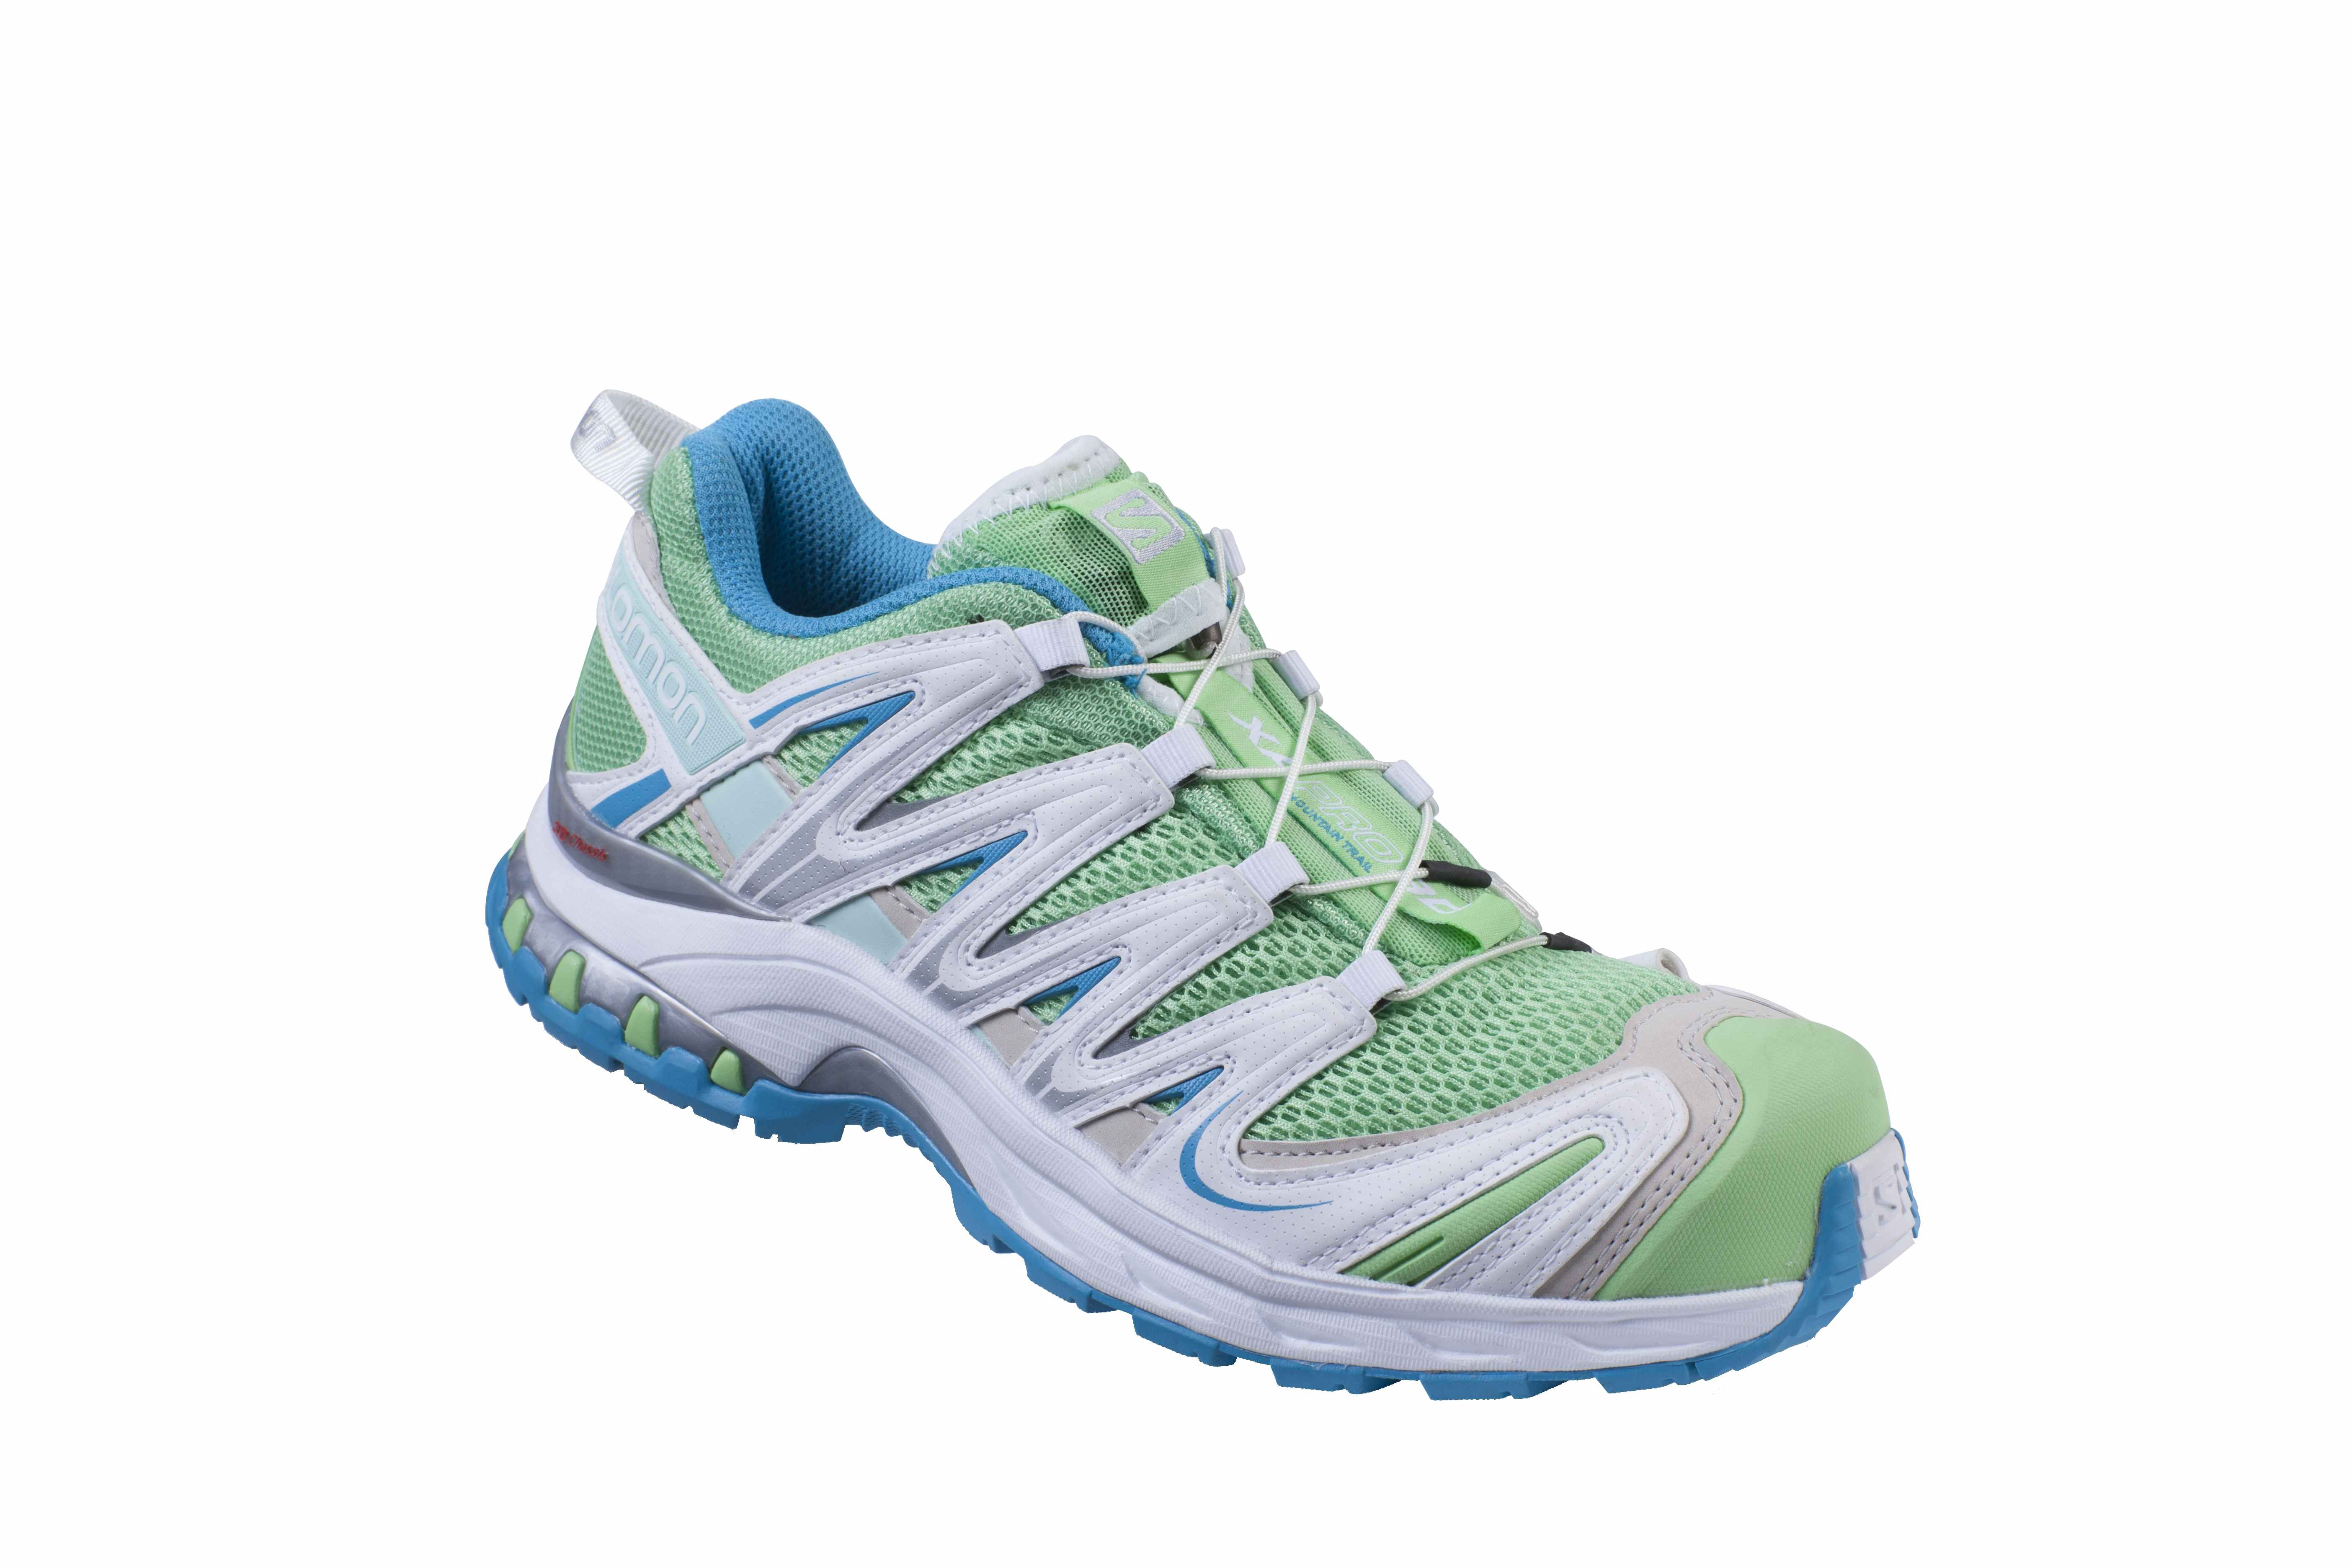 Salomon_XAPro 3D shoes_Womens